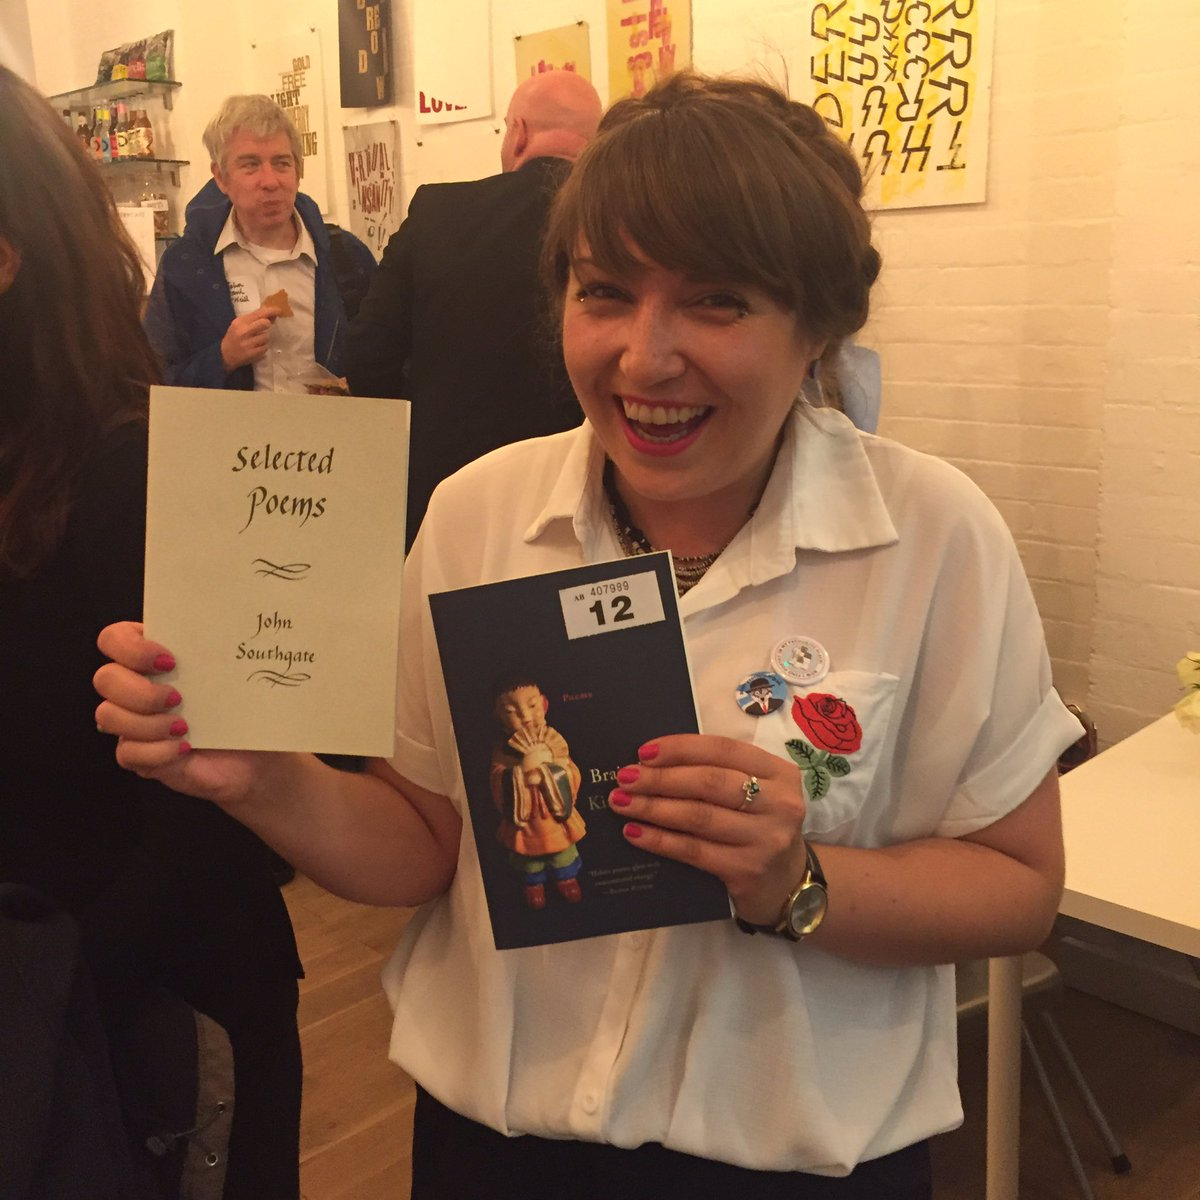 test Twitter Media - RT @WasThatThunder: Excitement on the @PoetrySociety tombola with @LaurieBolger https://t.co/jWFgVvBOwb